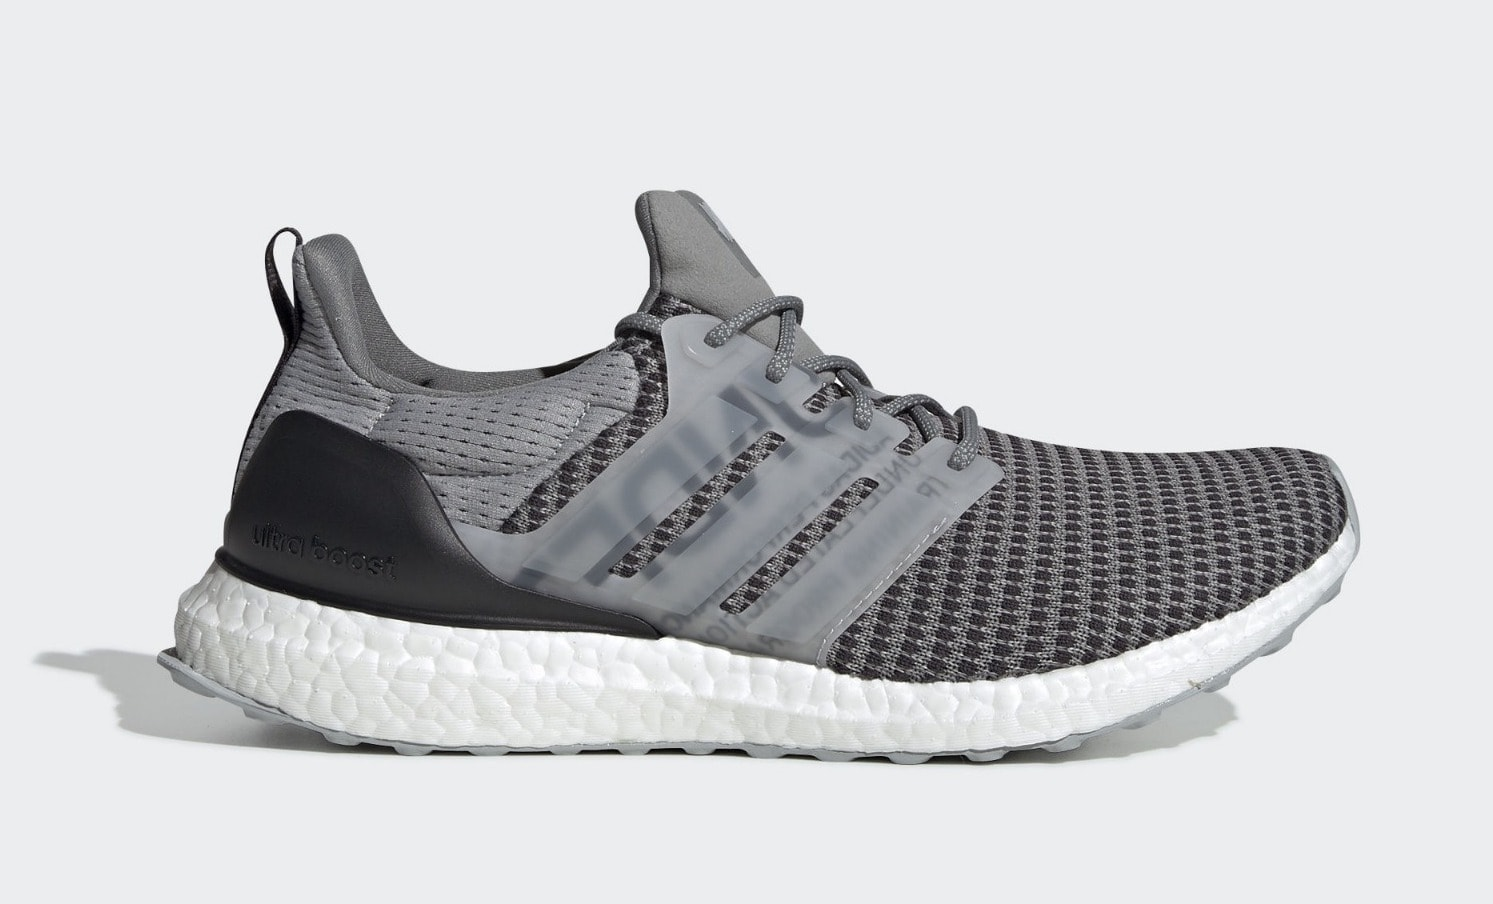 f36ec098dd3 Undefeated x adidas Ultra Boost 2.0 August 2018 - JustFreshkicks